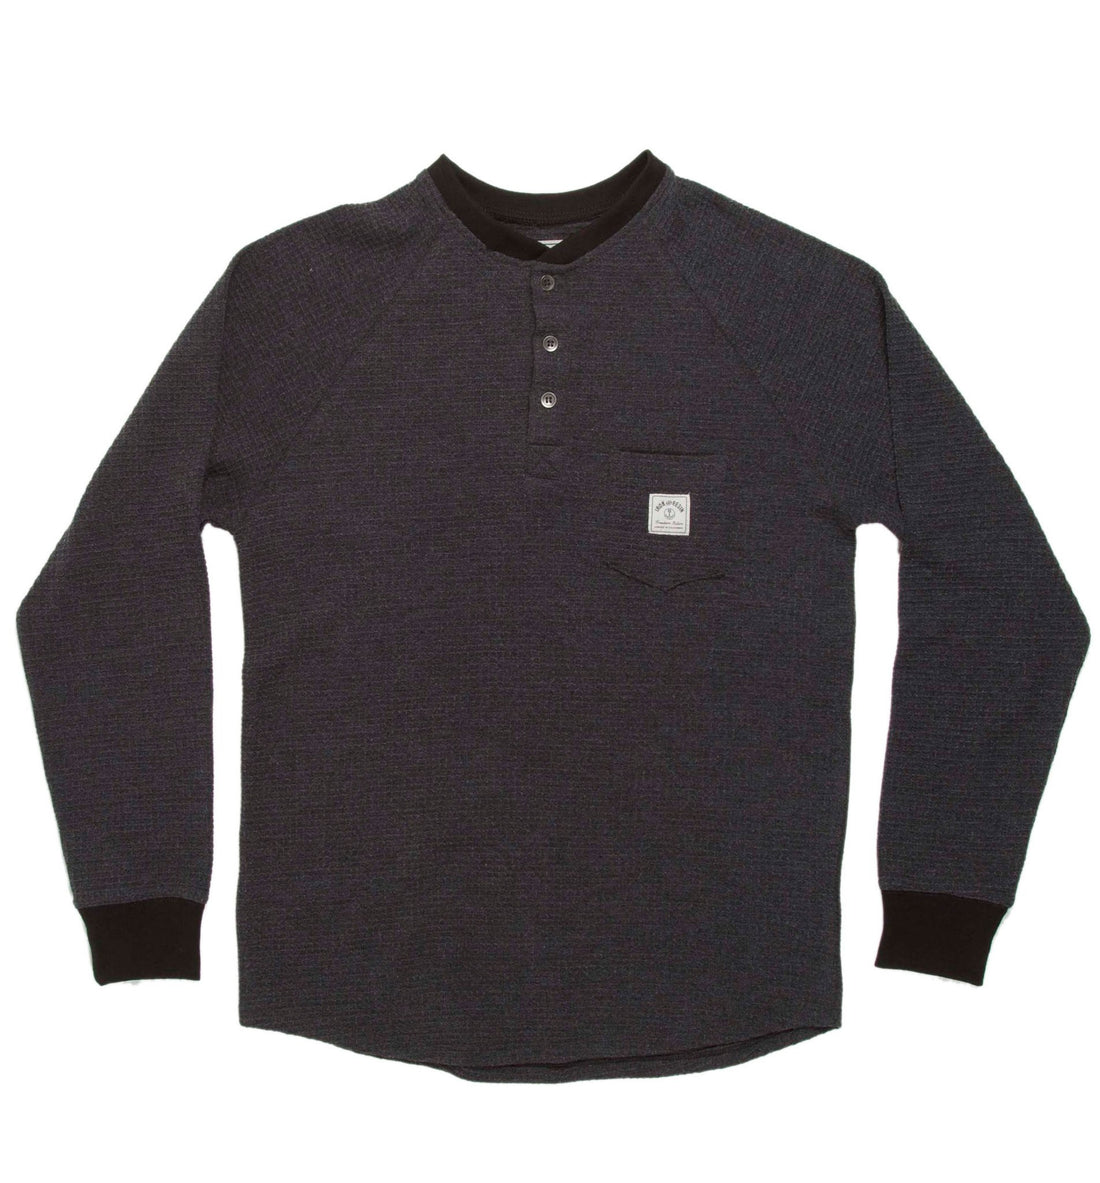 INR Paradigm Henley - Apparel: Men's: Knits - Iron and Resin